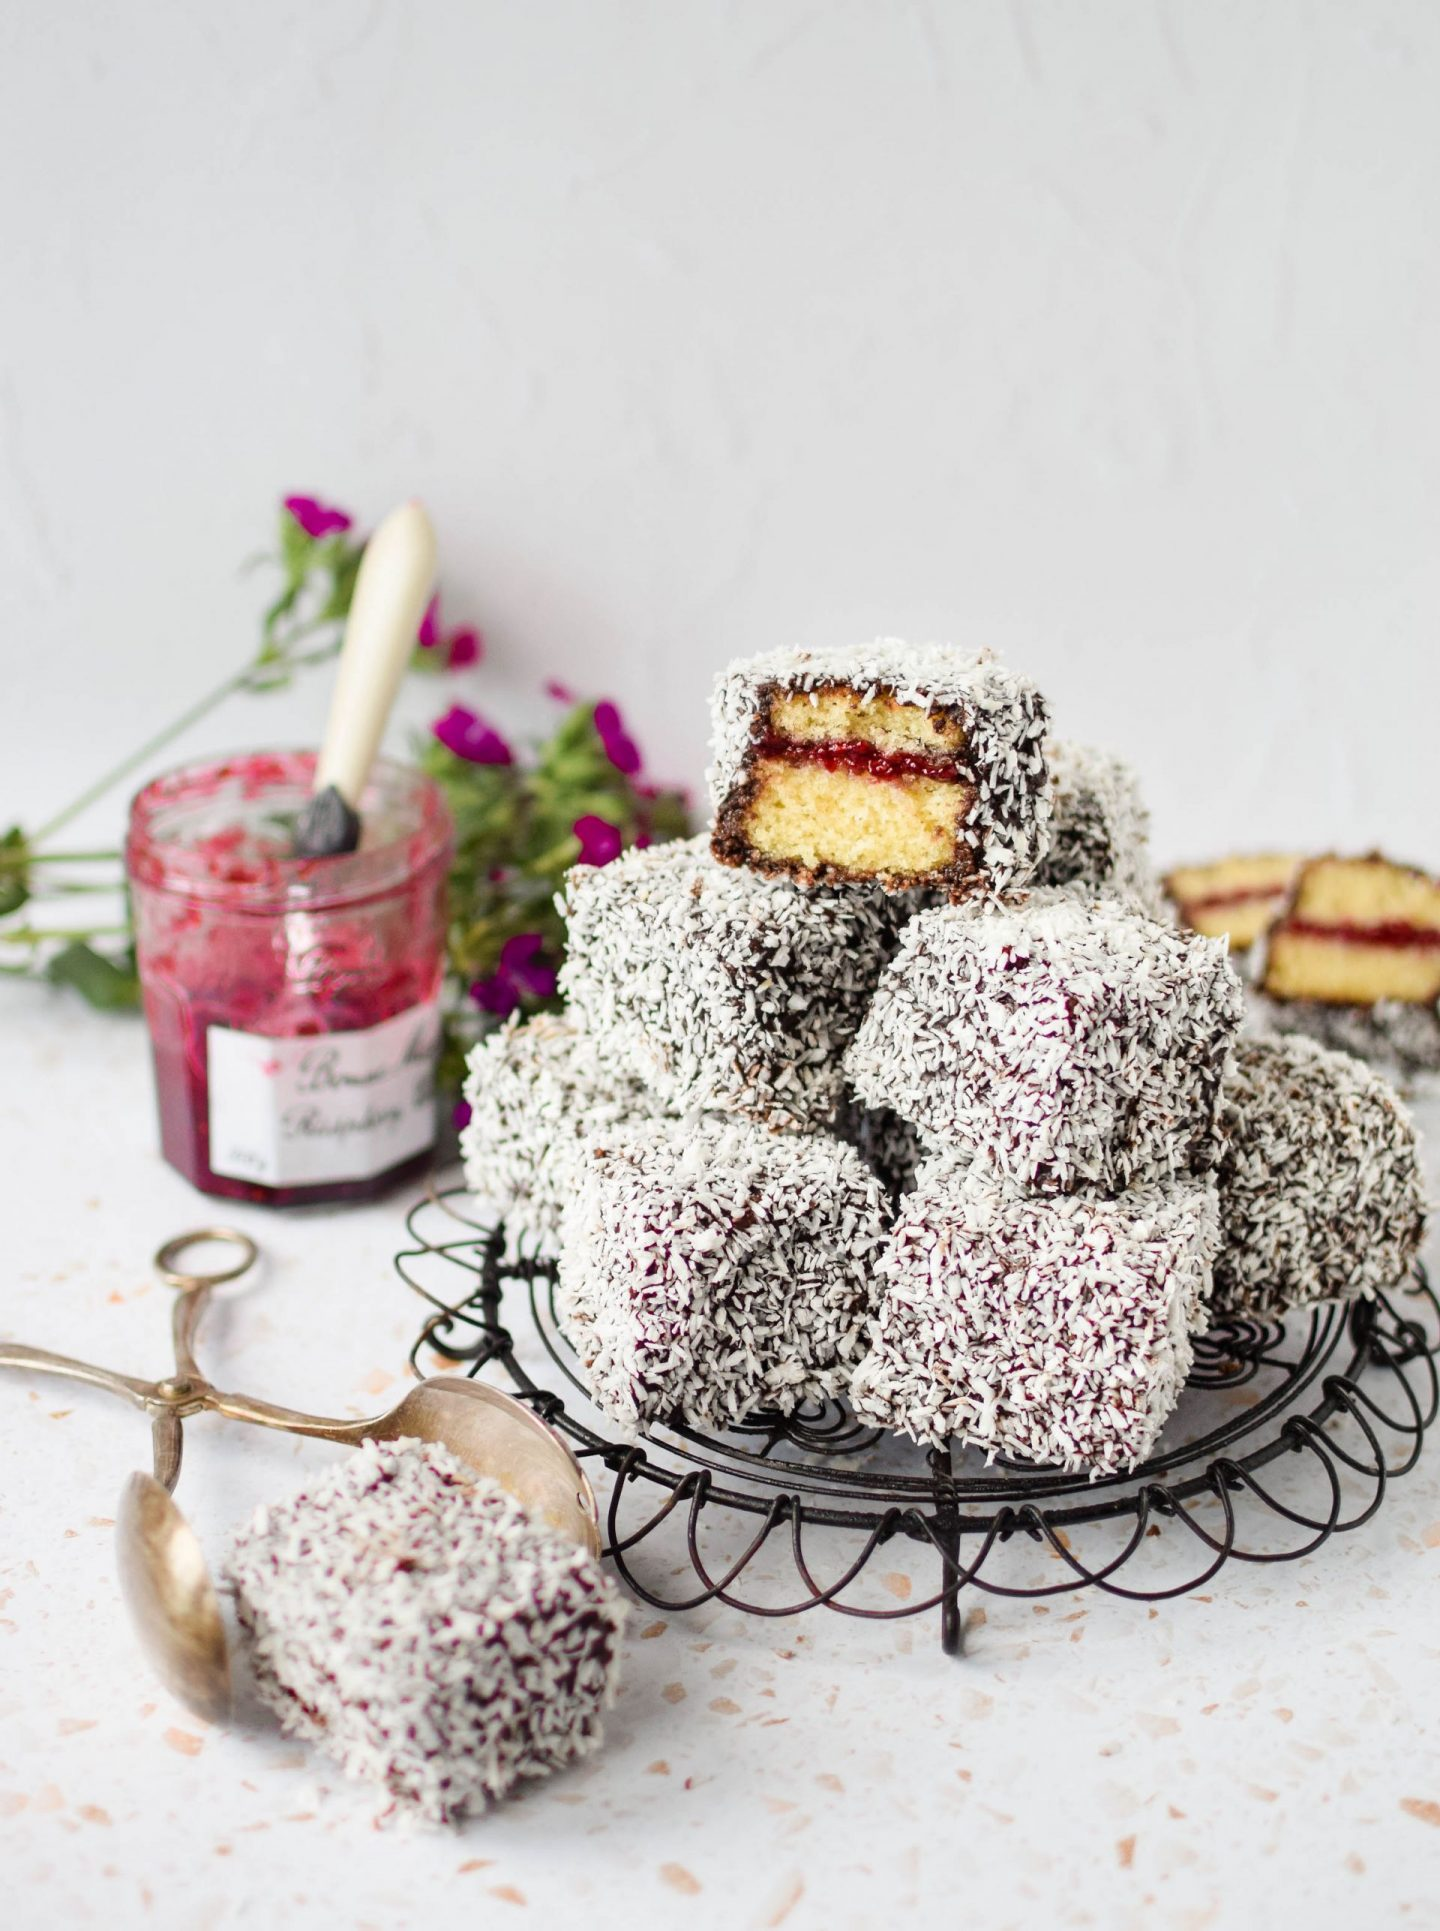 Wide shot of a pile of homemade lamington cakes